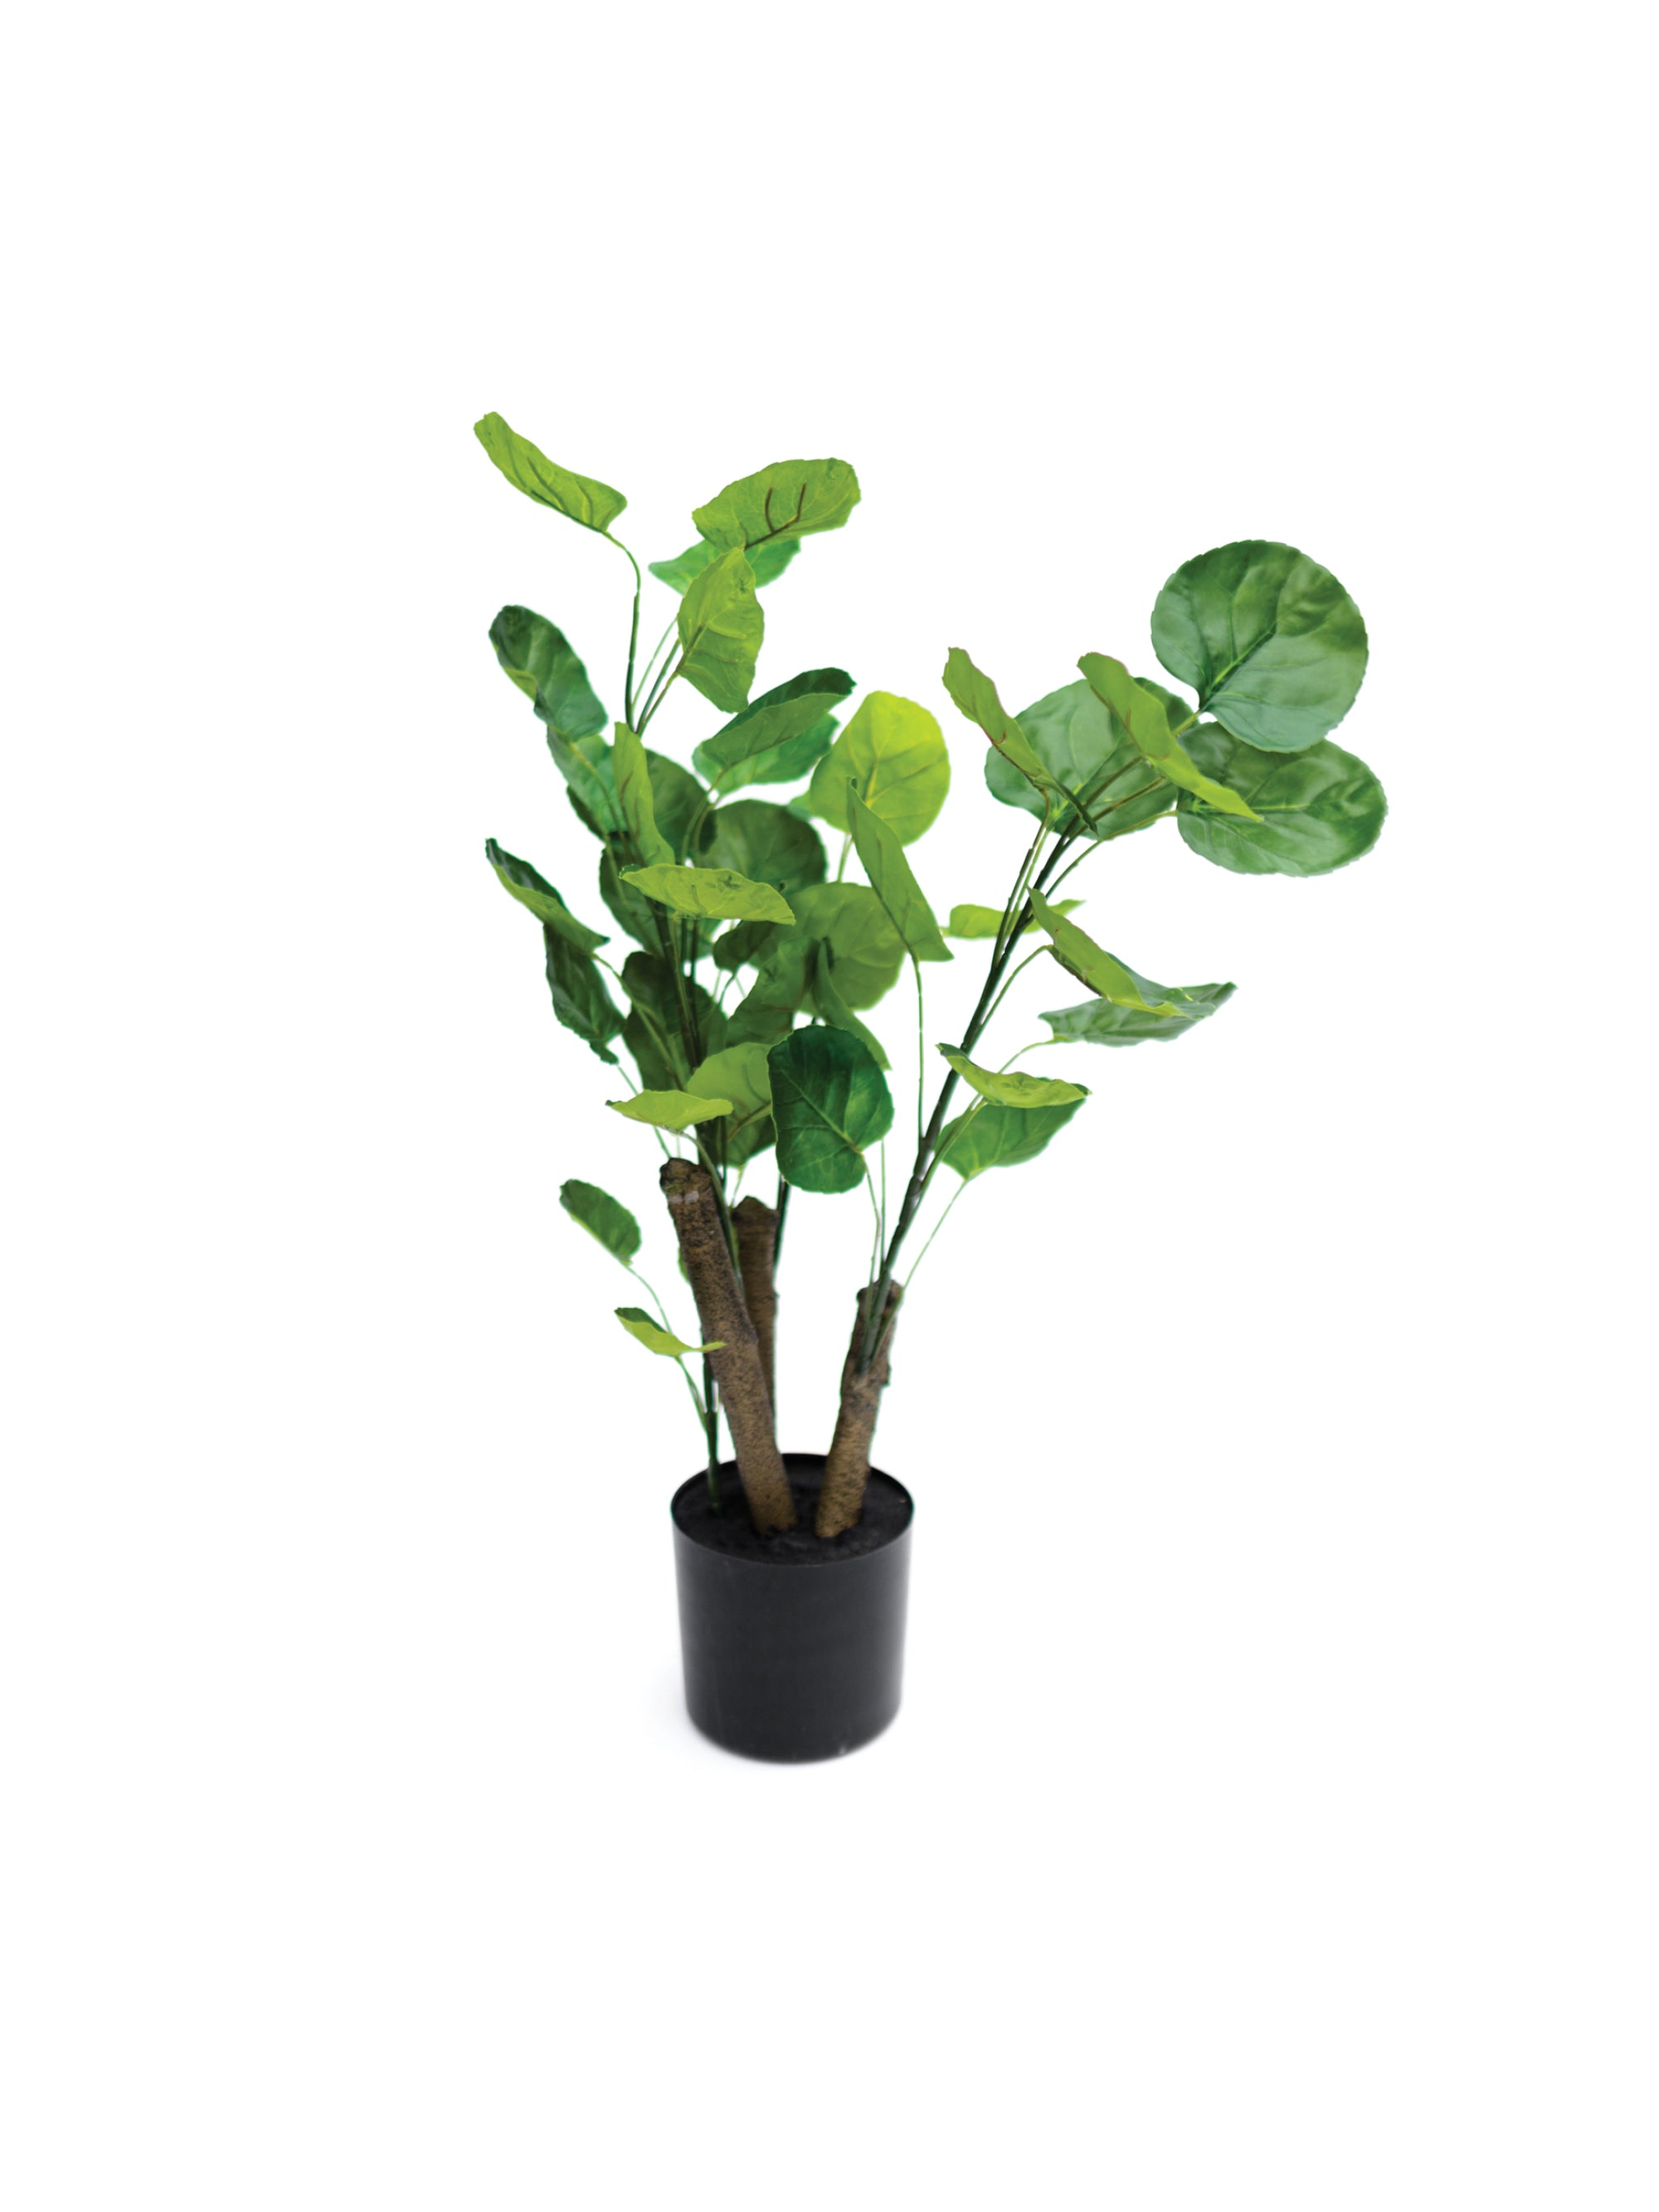 Potted Pilea Plant